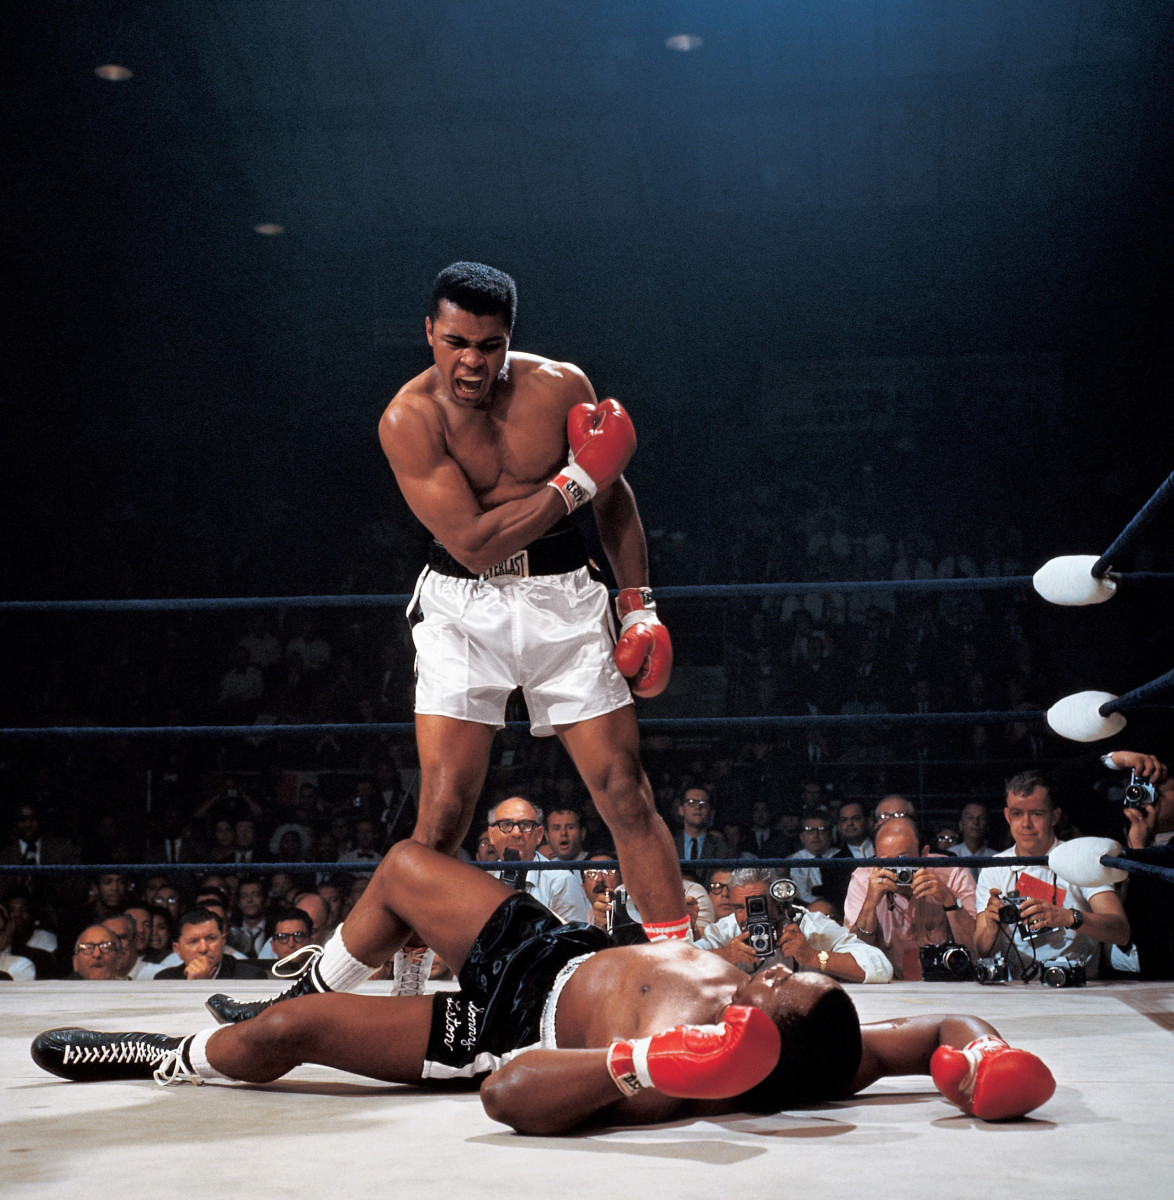 Muhammad Ali after first round knockout of Sonny Liston during World Heavyweight Title fight at St. Dominic's Arena in Lewiston, Maine on 5/25/1965. Photo by Neil Leifer—Sports Illustrated